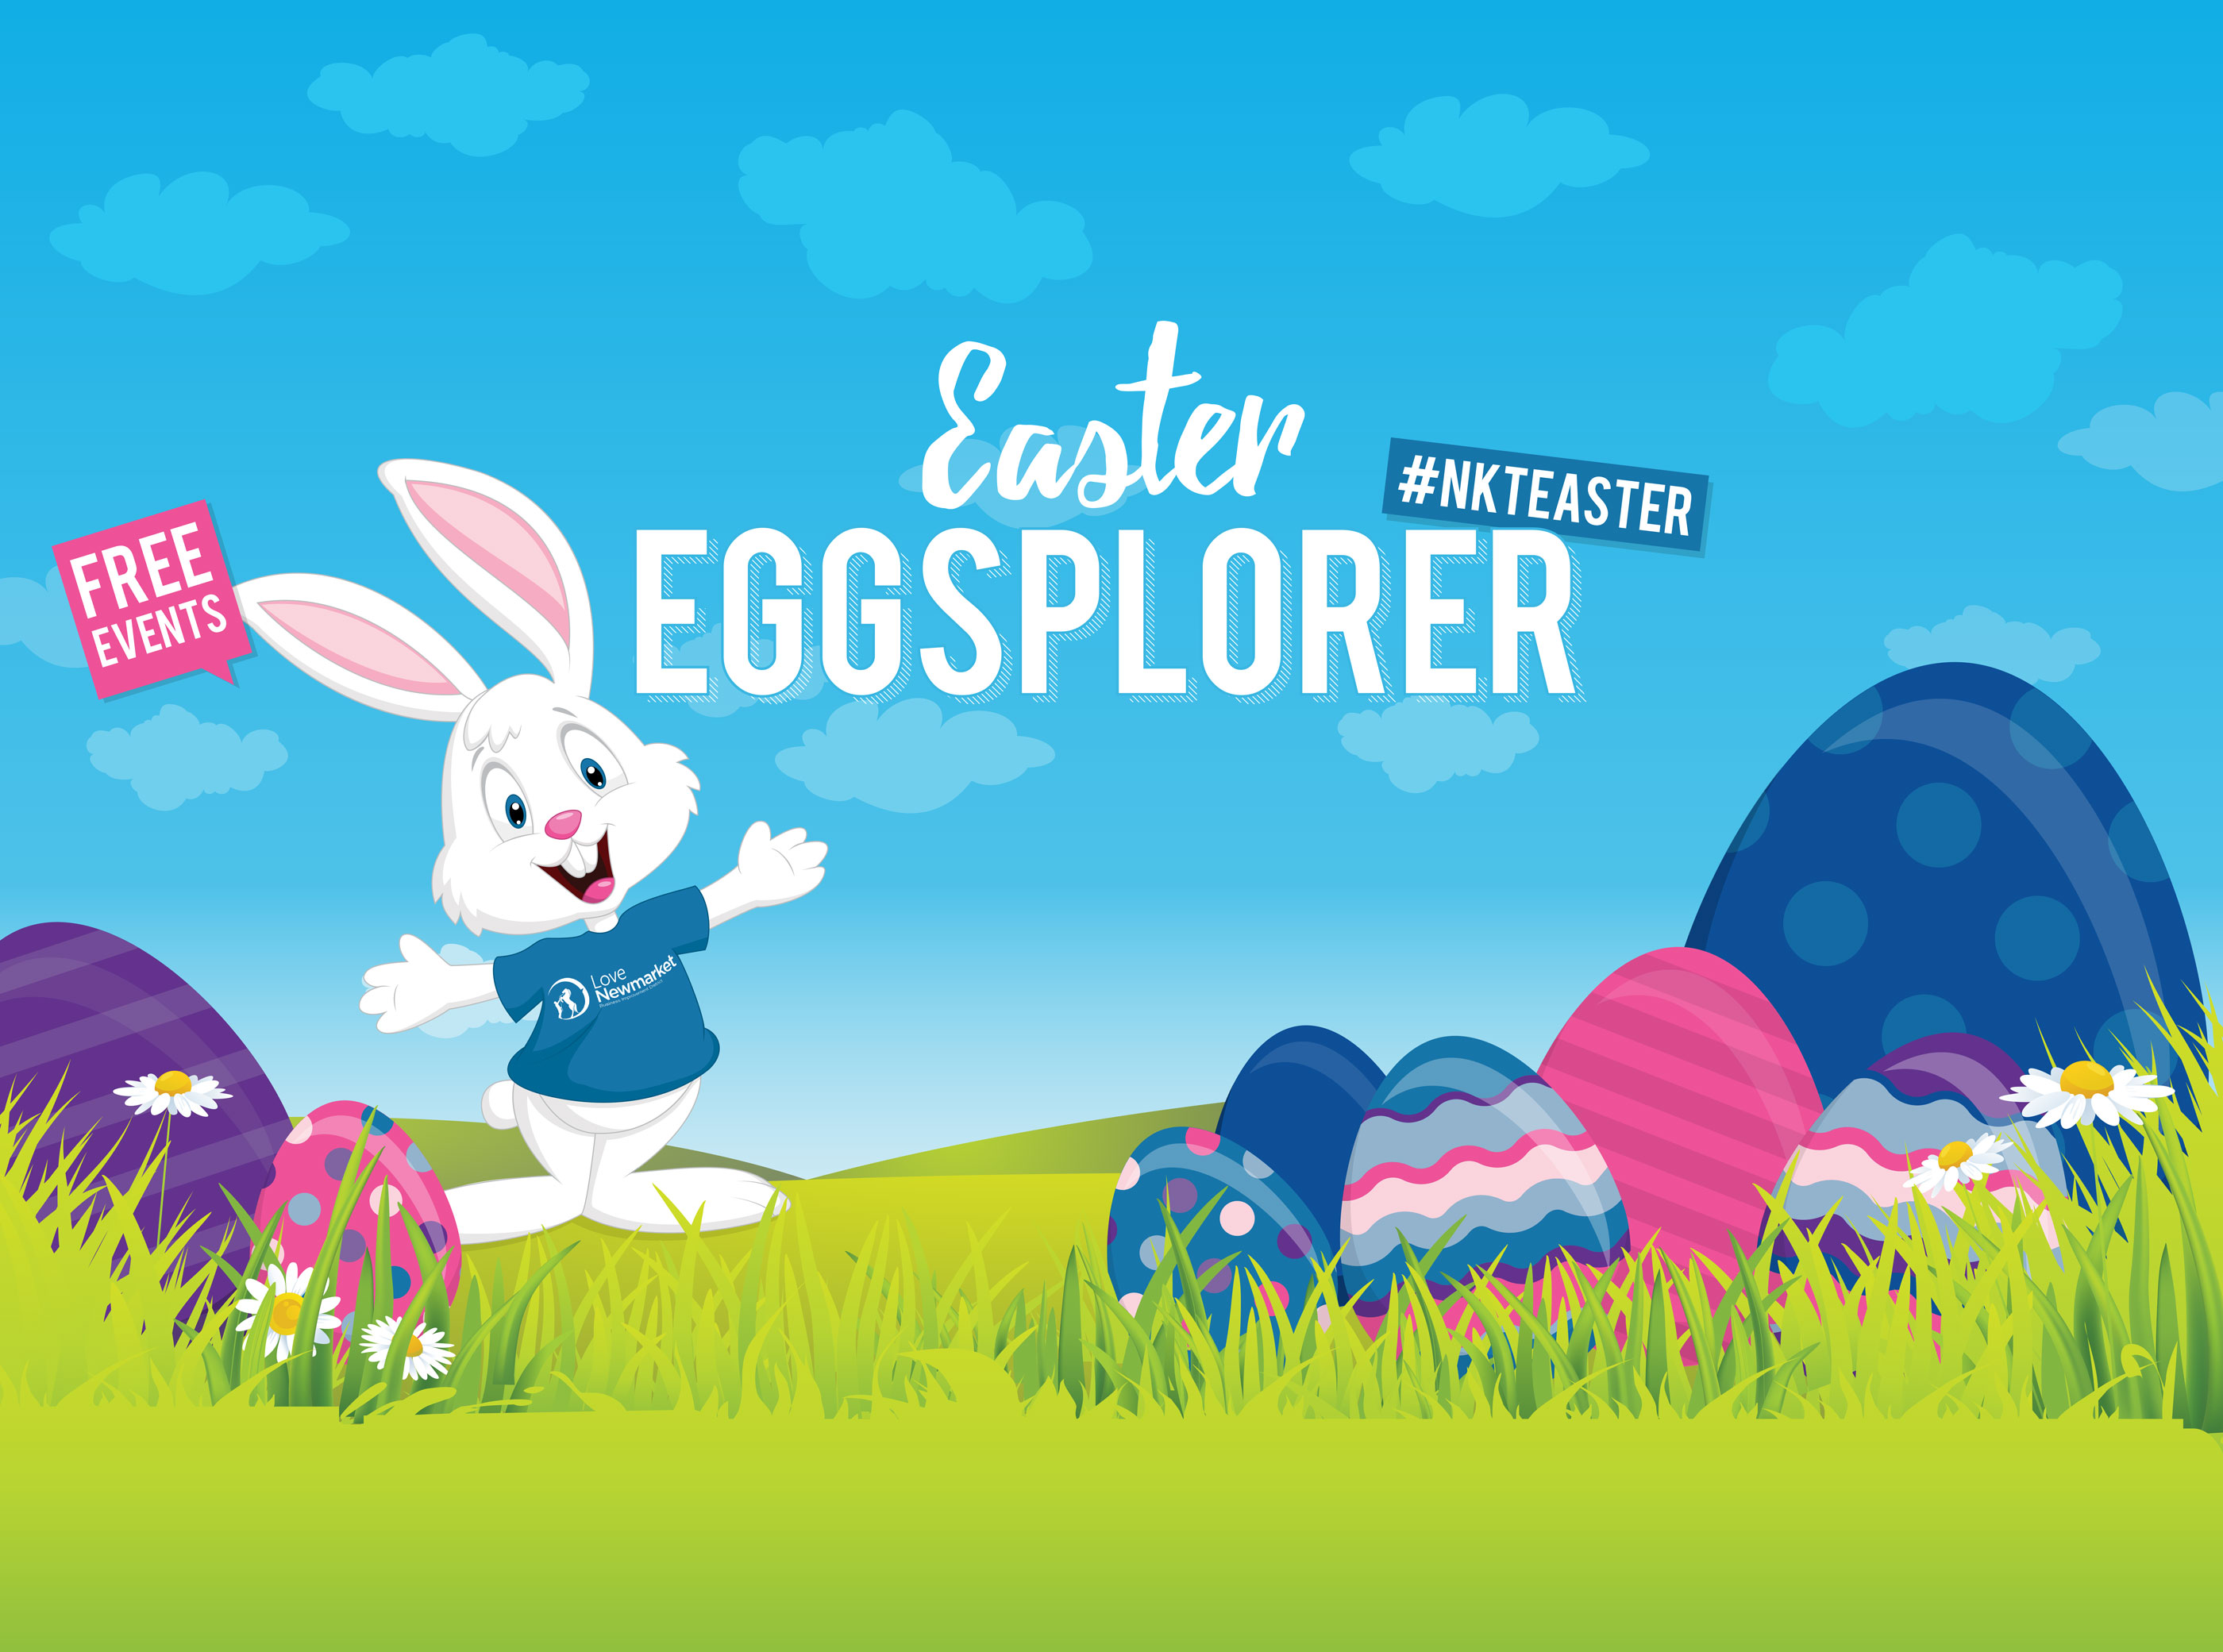 The winners of our Eggsplorer Easter Trail!